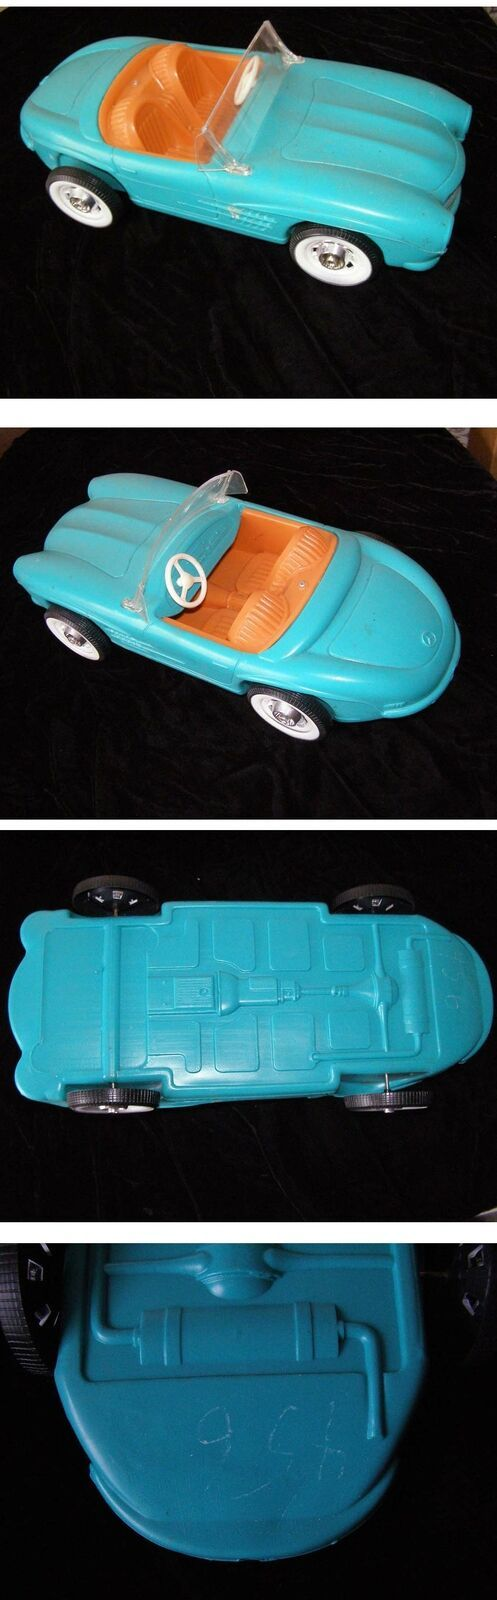 Primary image for Irwin Barbie Convertible Toy Car 1960s Mercedes